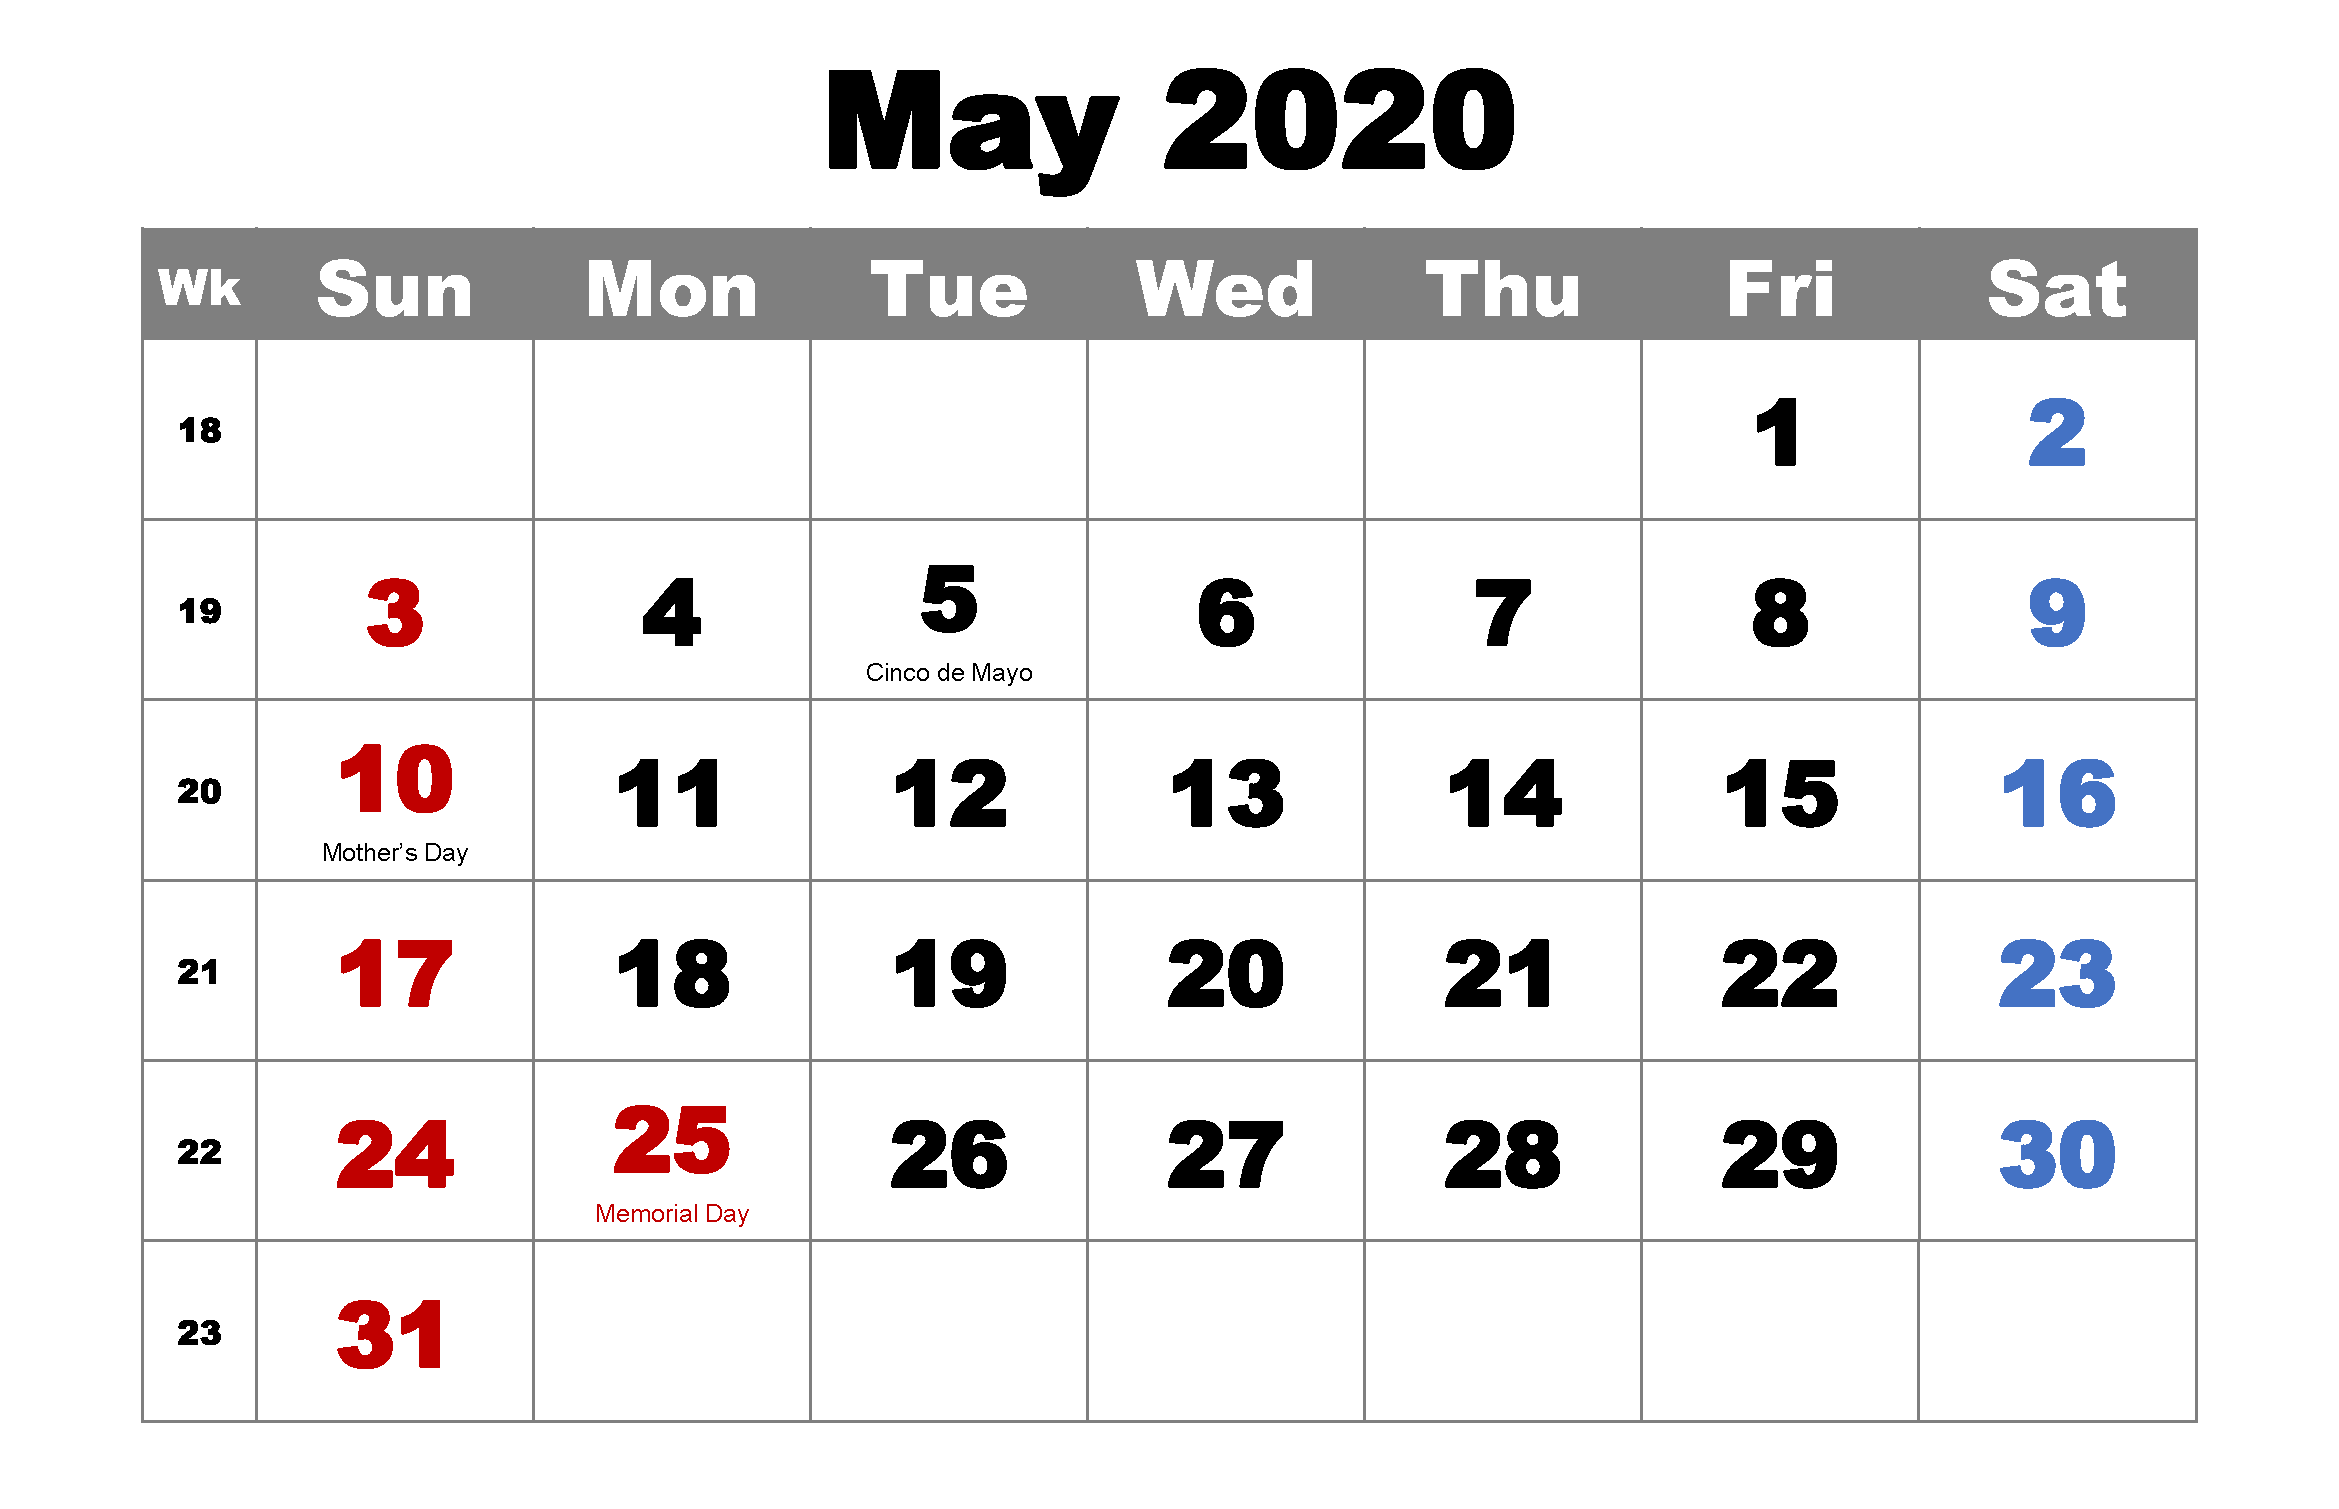 May 2020 Holidays Calendar Template